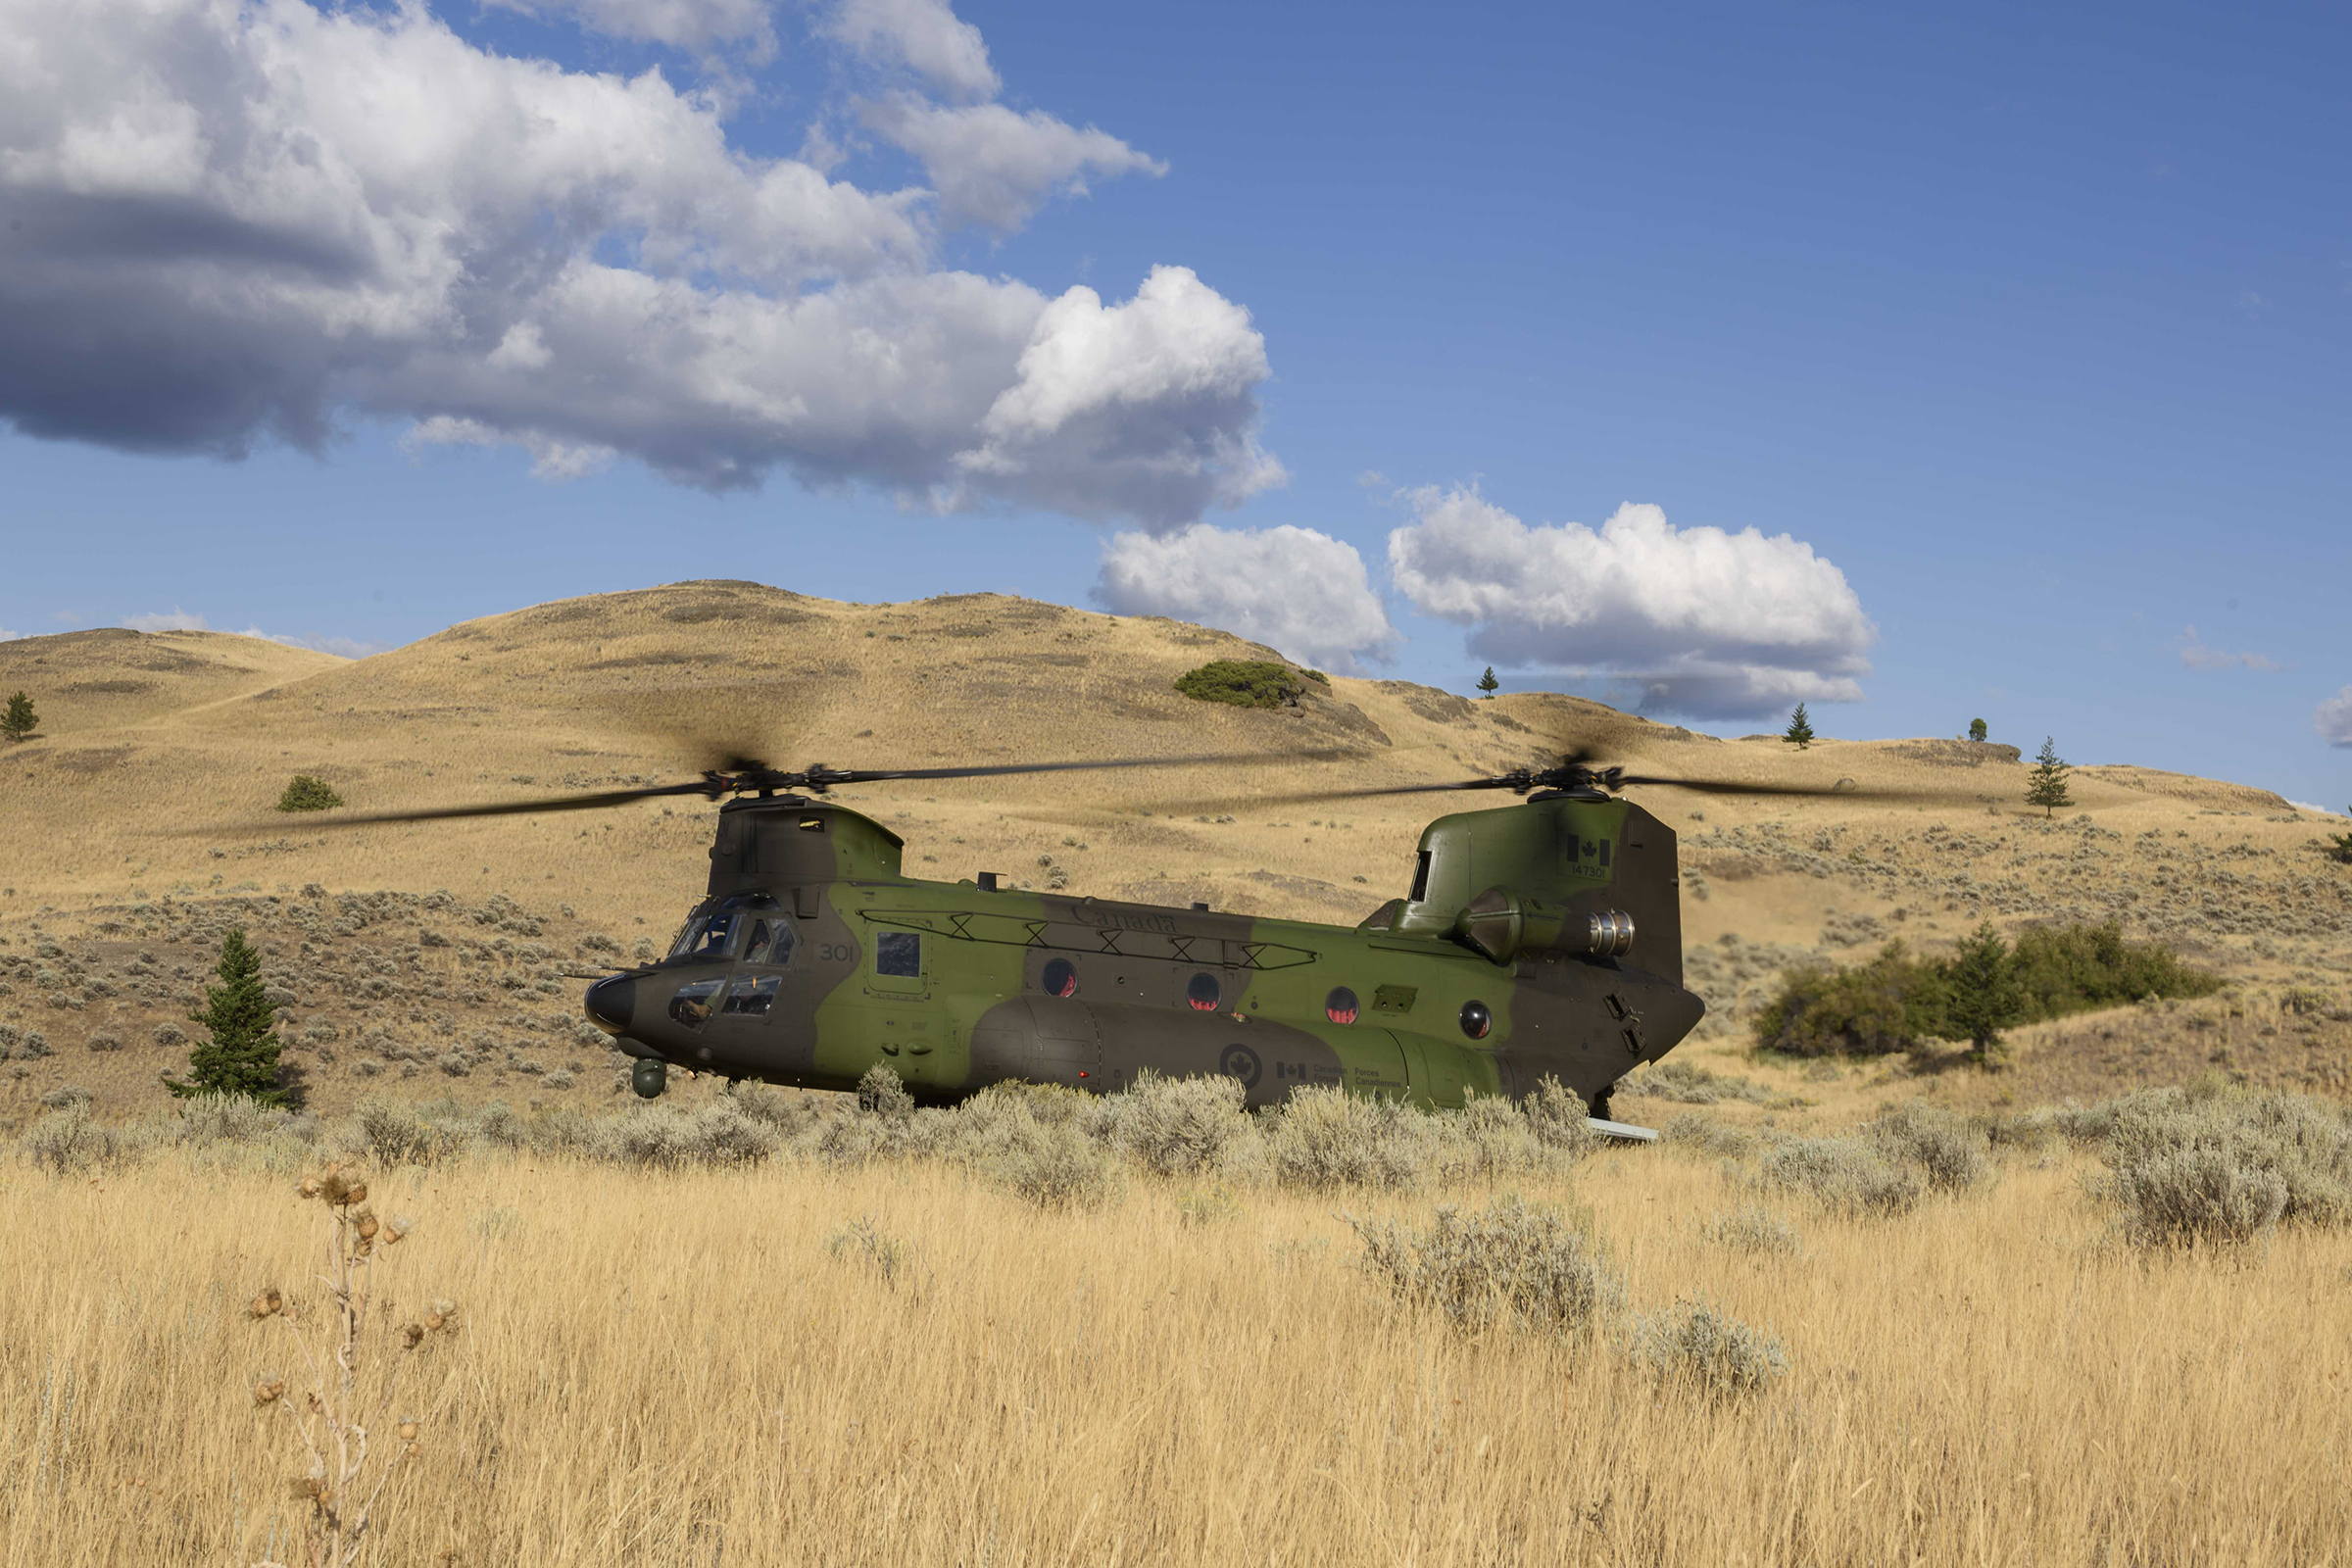 A CH-147F Chinook helicopter conducts lands near Kamloops, British Columbia, on September 14, 2017, during Operation Lentus, which provided assistance to the province in response to wildfires.  Photo: Corporal Dominic Duchesne-Beaulieu, BN51-2017-0005-003